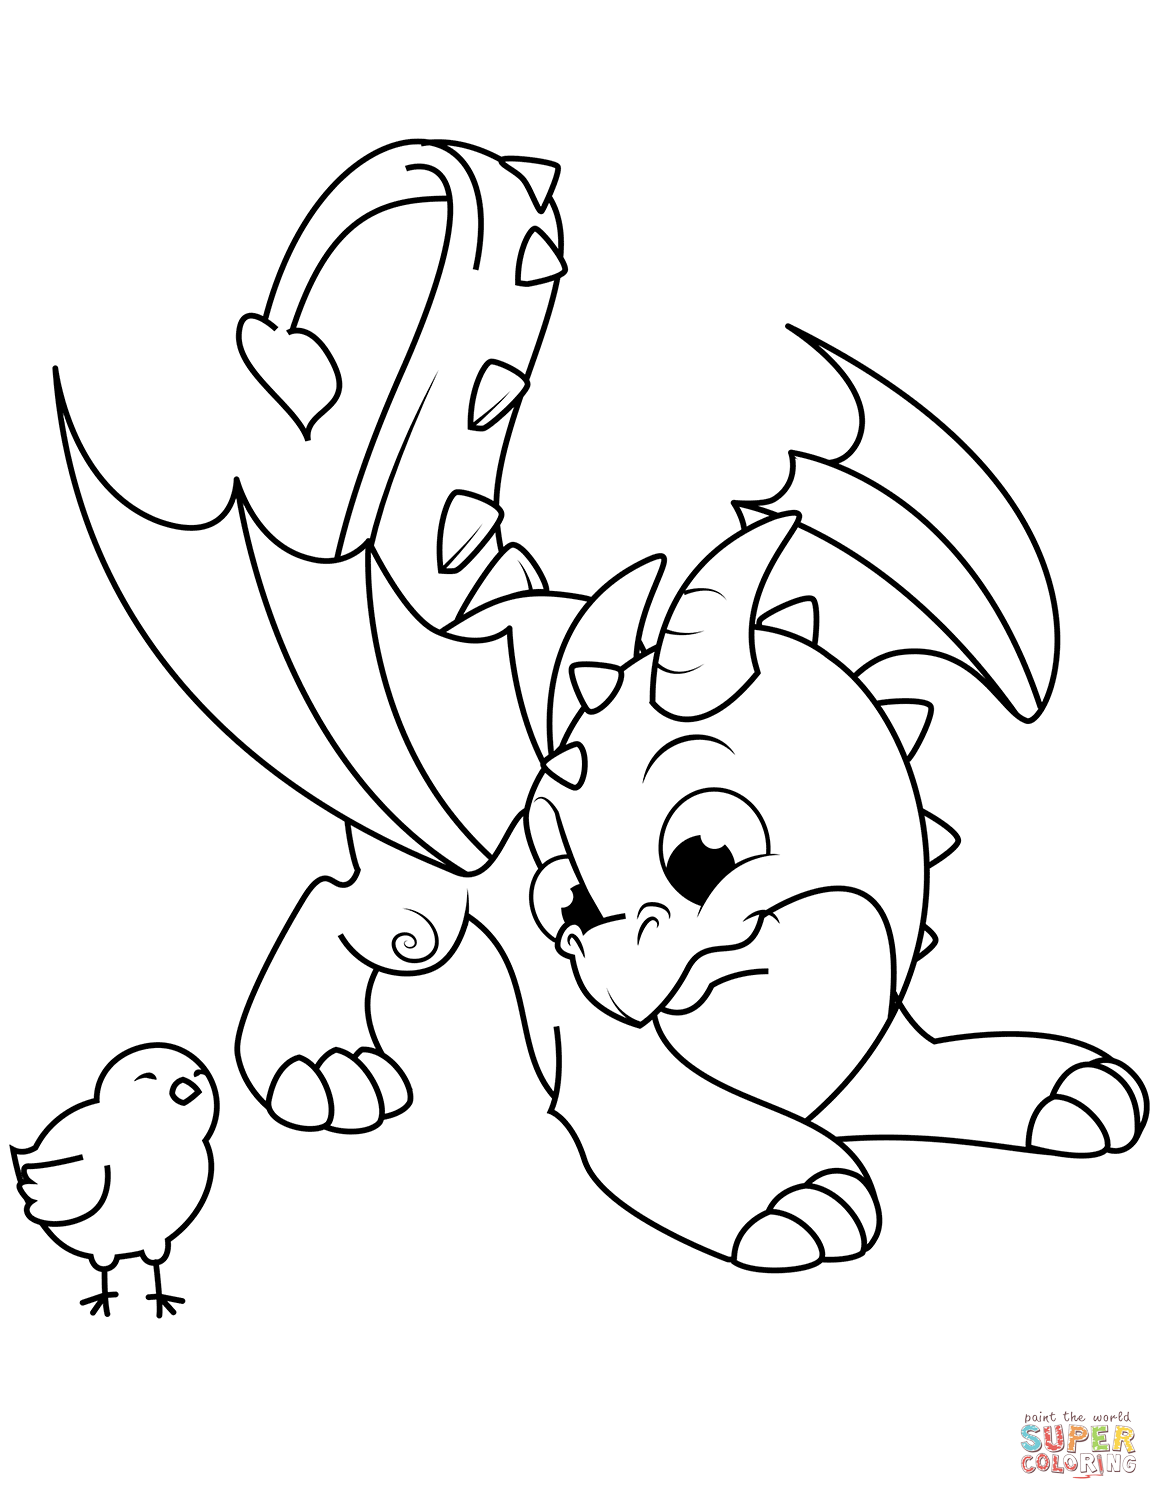 dragon colouring in pictures advanced dragon coloring pages at getcoloringscom free in pictures colouring dragon